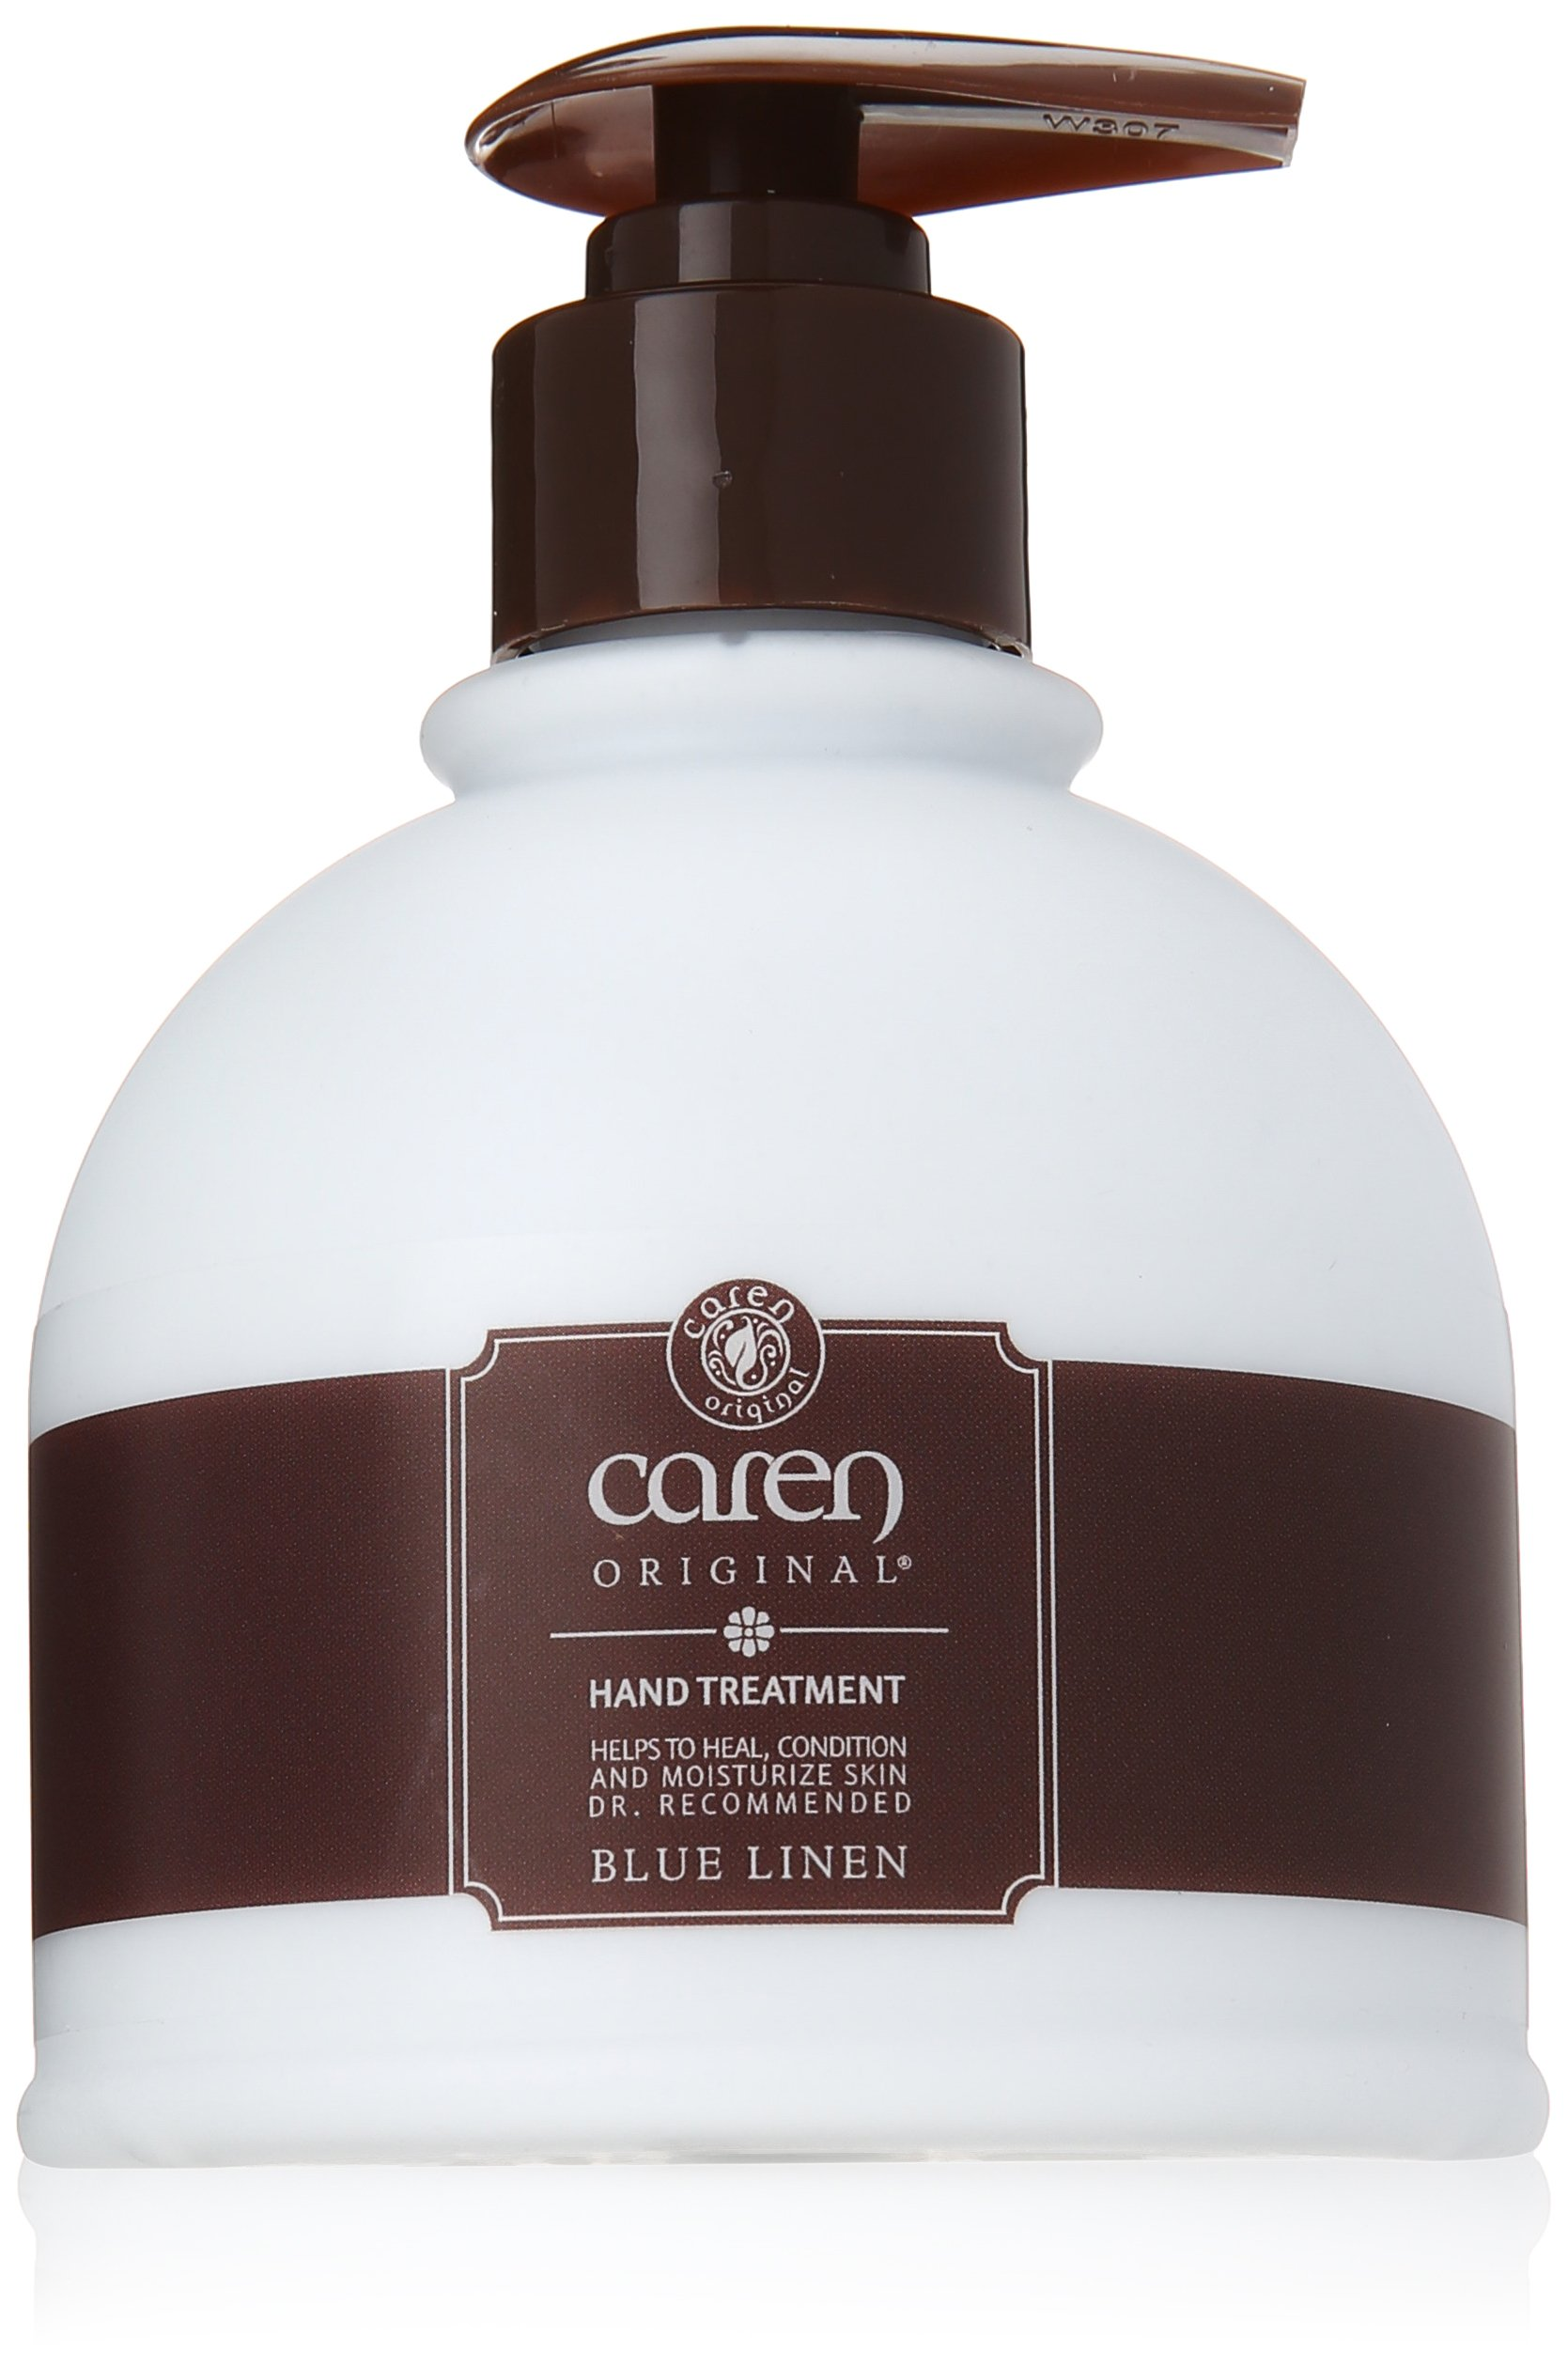 Caren Original Hand Treatment, Blue Linen, 12 Ounce